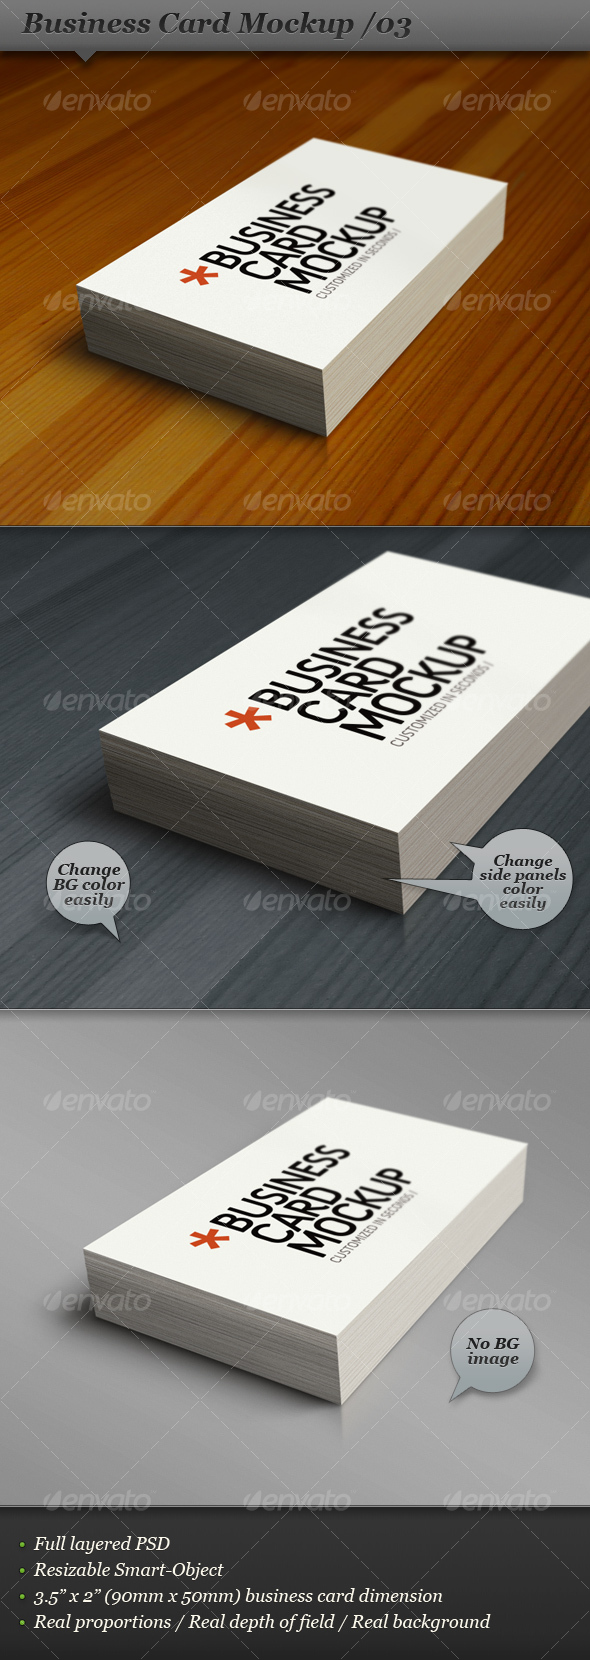 Stack of Business Cards images